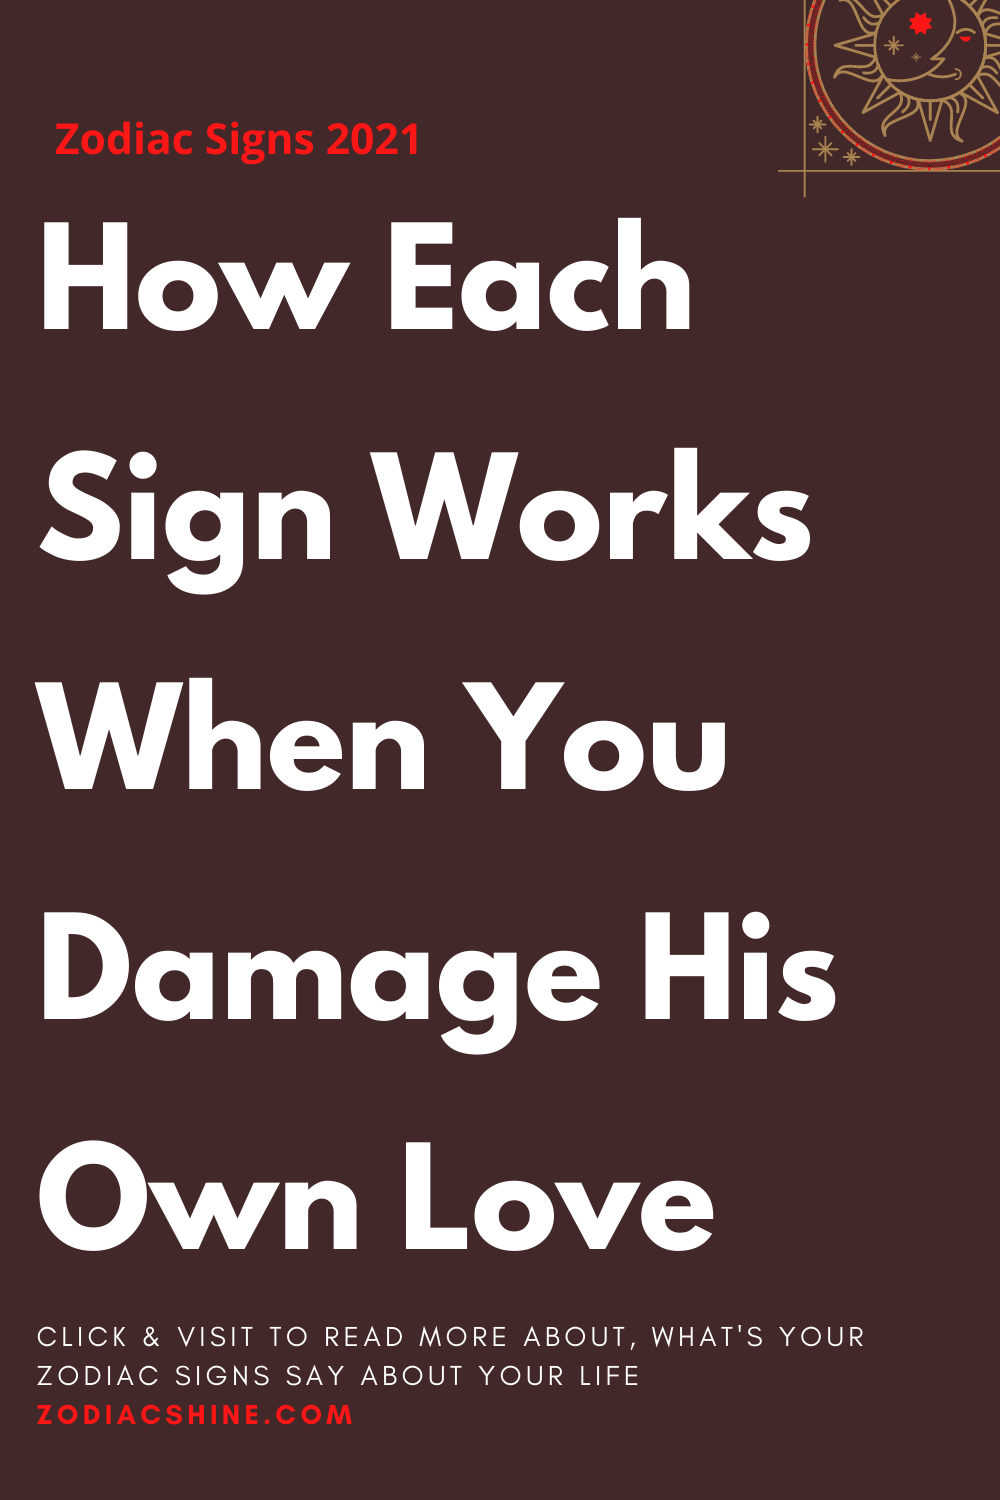 How Each Sign Works When You Damage His Own Love